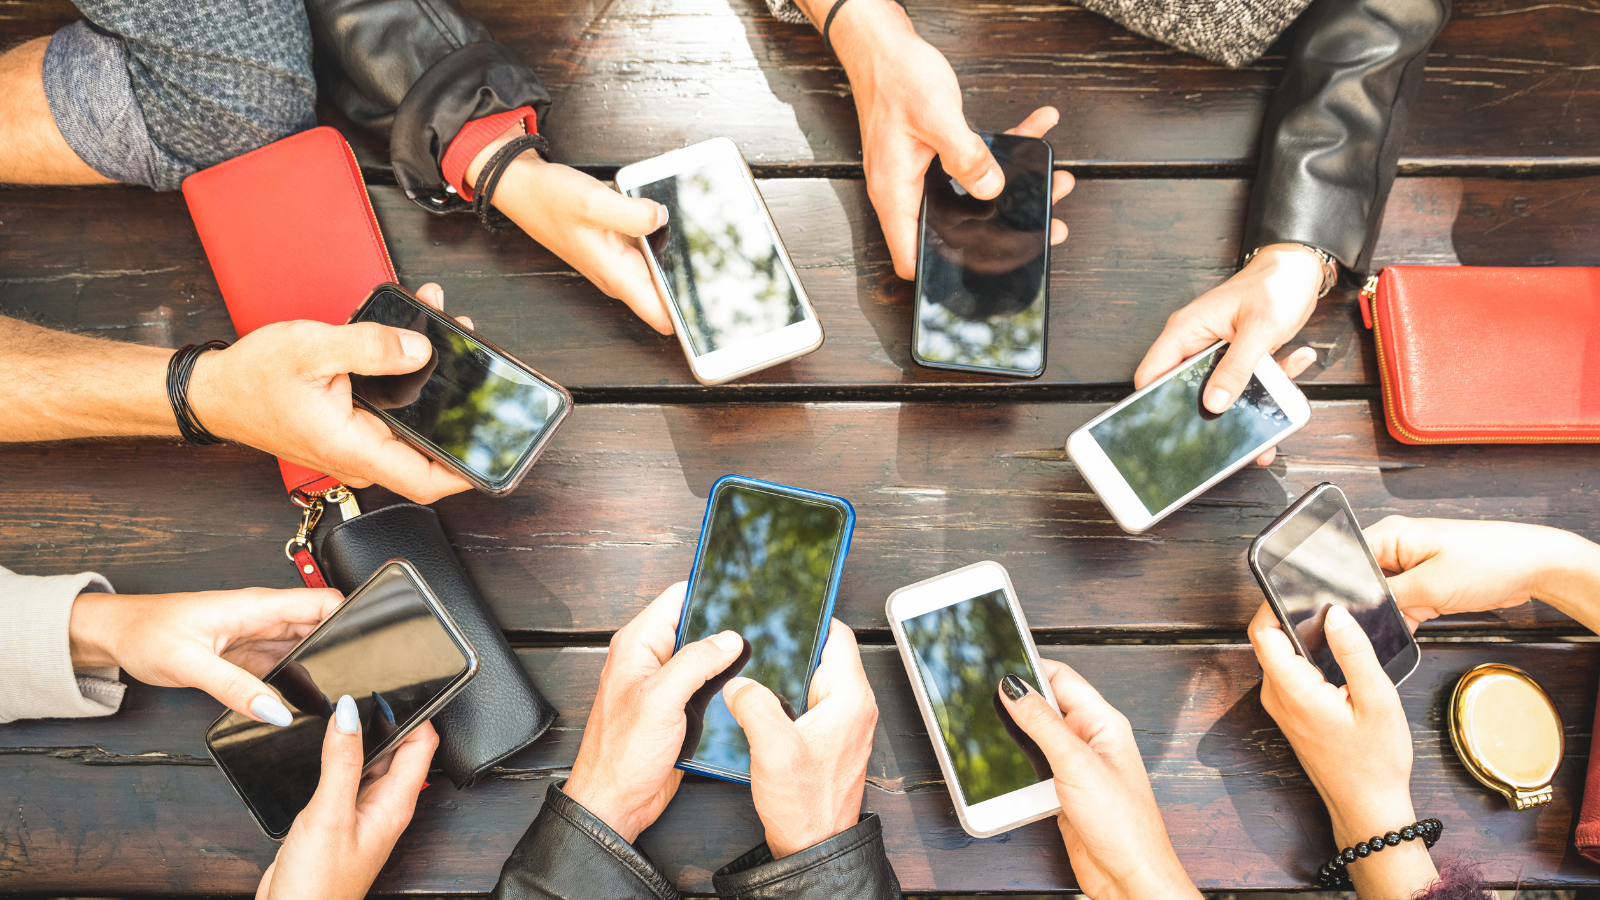 group of people holding phones, technology